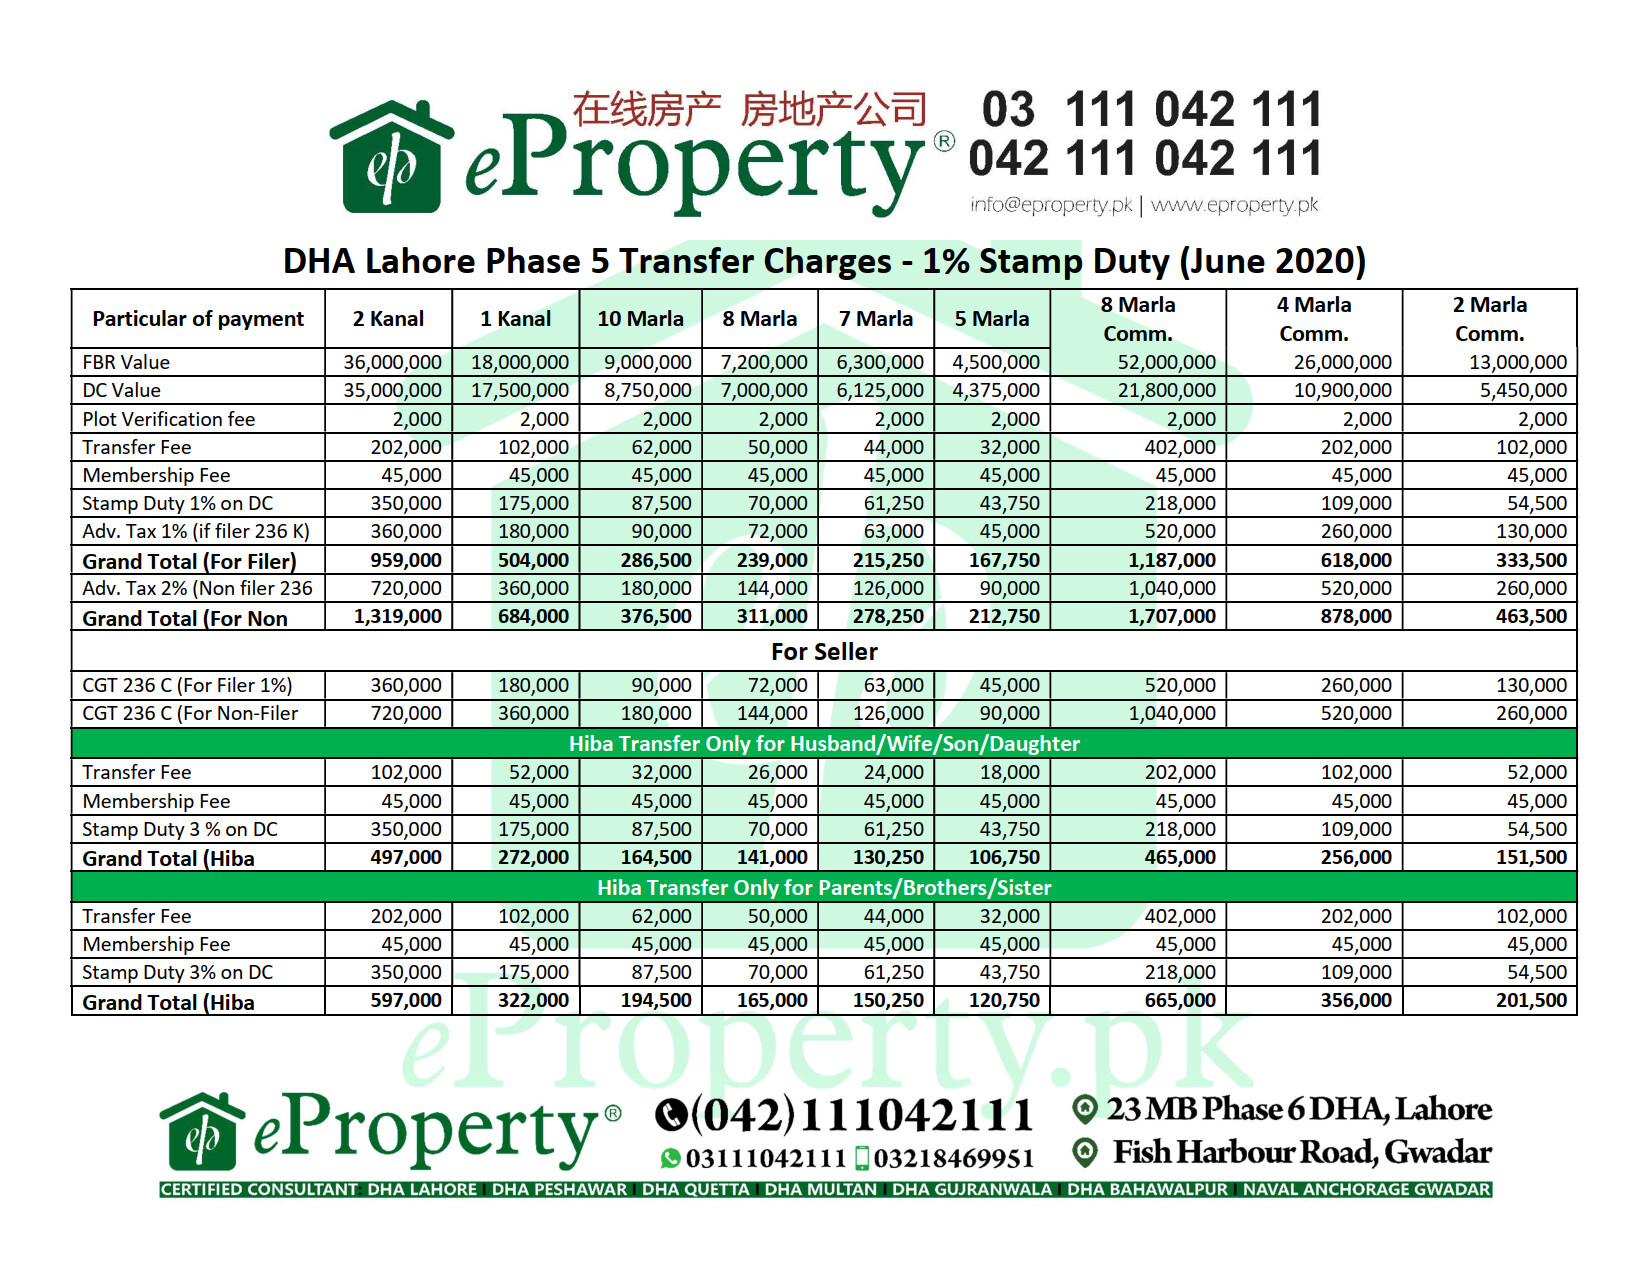 DHA Lahore Phase 5 Transfer Charges - 1% Stamp Duty (June 2020)